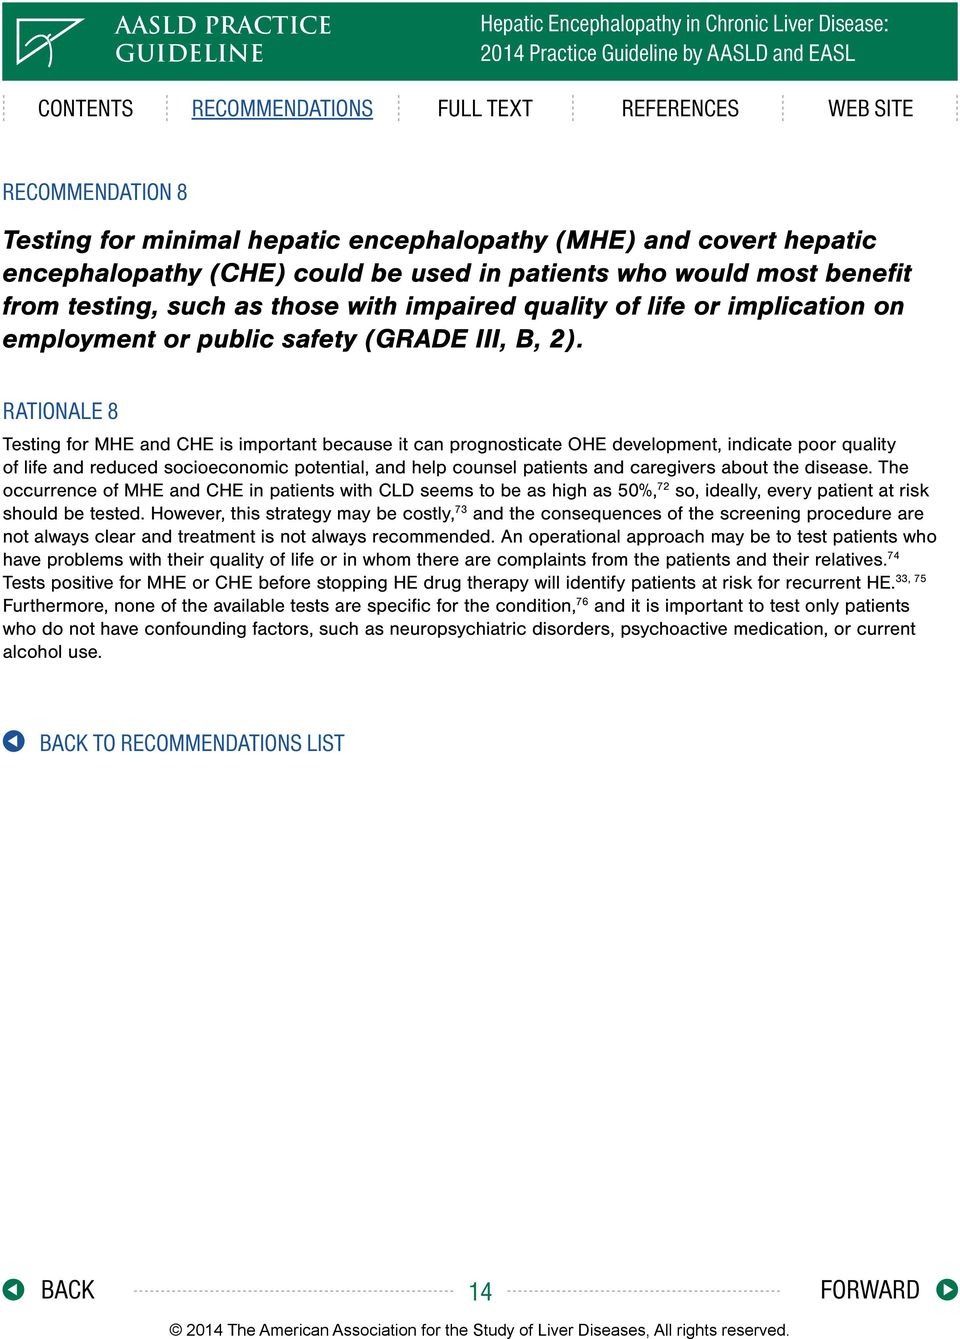 RATIONALE 8 Testing for MHE and CHE is important because it can prognosticate OHE development, indicate poor quality of life and reduced socioeconomic potential, and help counsel patients and